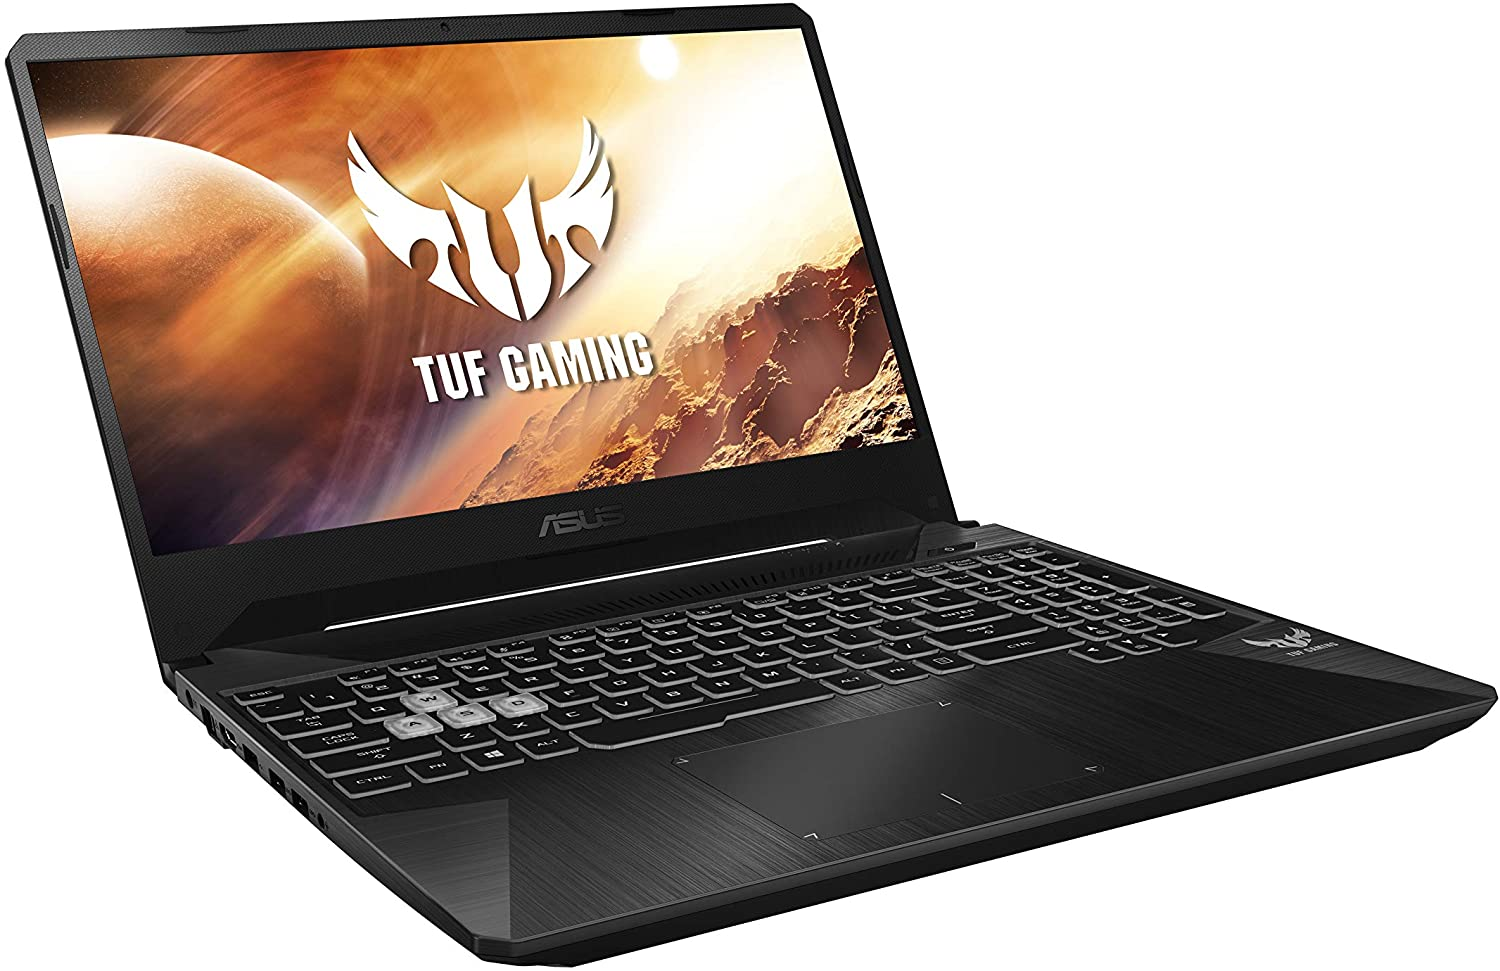 Asus TUF Gaming FX505DD-BQ121T Gaming Laptop (Black) - AMD R5-3750H 2.1 GHz, 8 GB RAM, 512 GB SSD, Nvidia GeForce GTX 1050,15.6 inches, Windows 10, Eng-Arb-KB